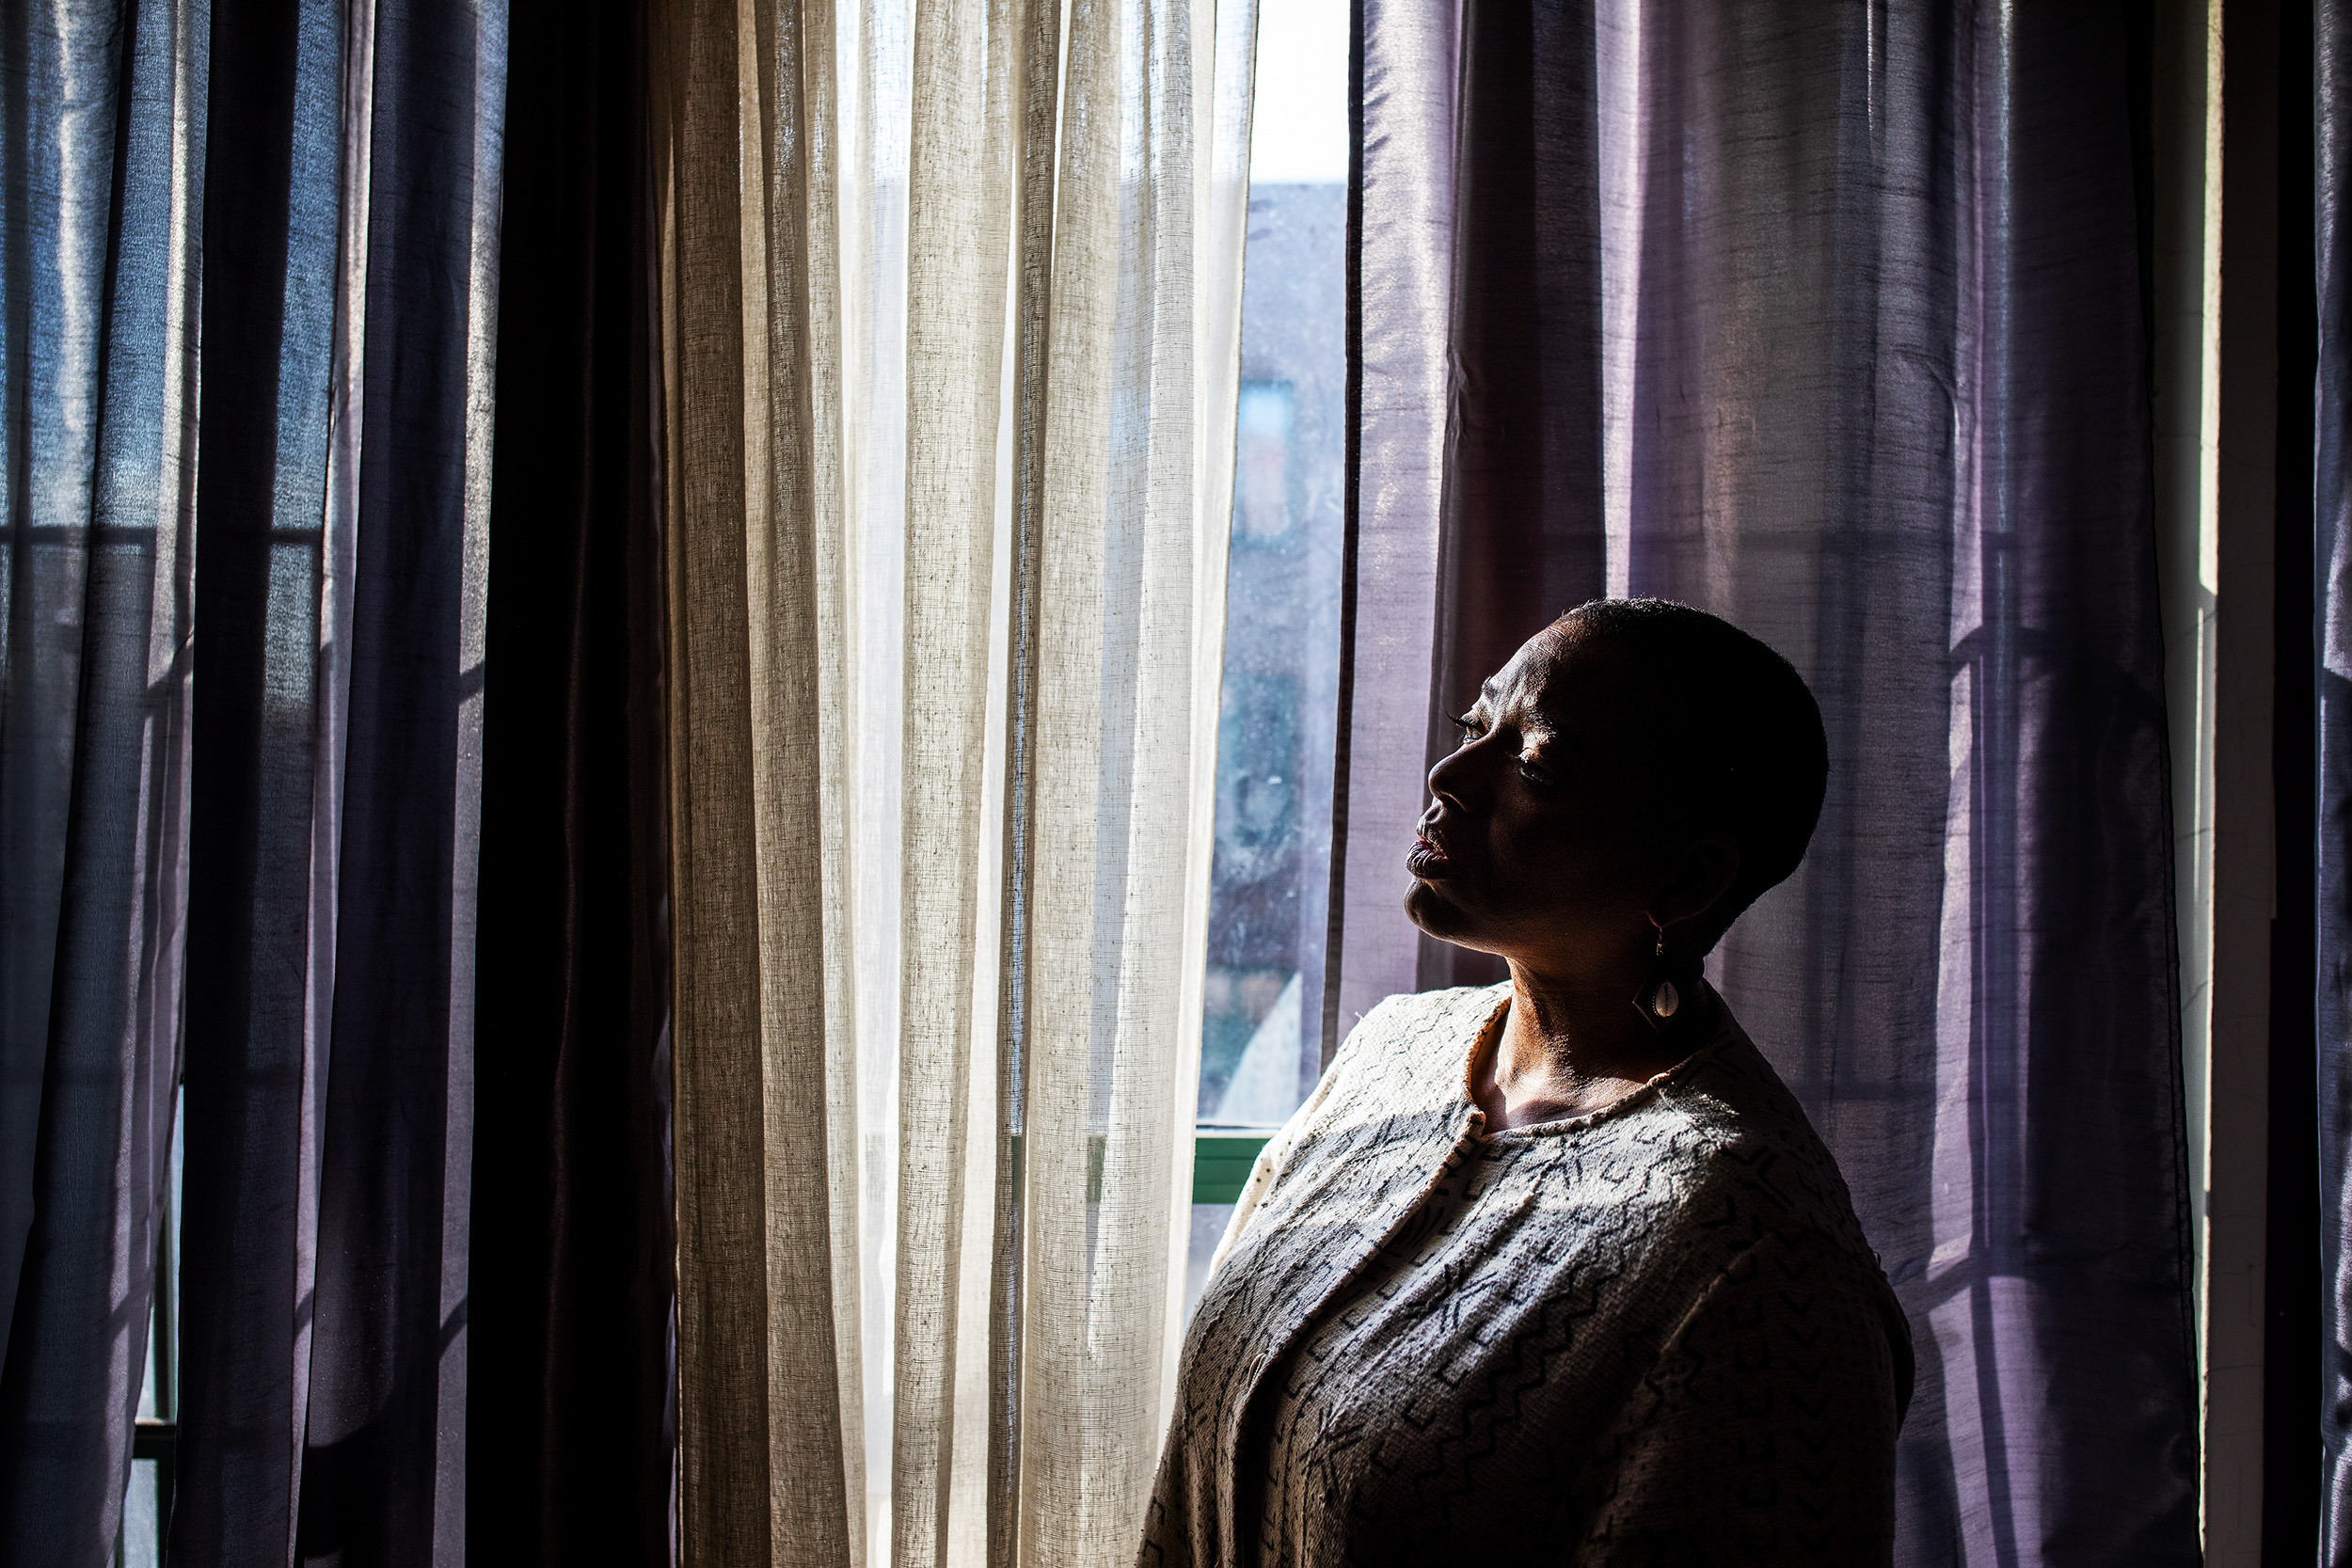 "Parent Advocate Hope Newton a parent Advocate at the Center for Family Representation at her home in the Bronx, New York. ""It's like a scarlet letter,"" said Hope Lyzette Newton, whose name was included on a New York State list of people who mistreat children after an allegation of corporal punishment. The charge was dismissed, but her name was not removed."